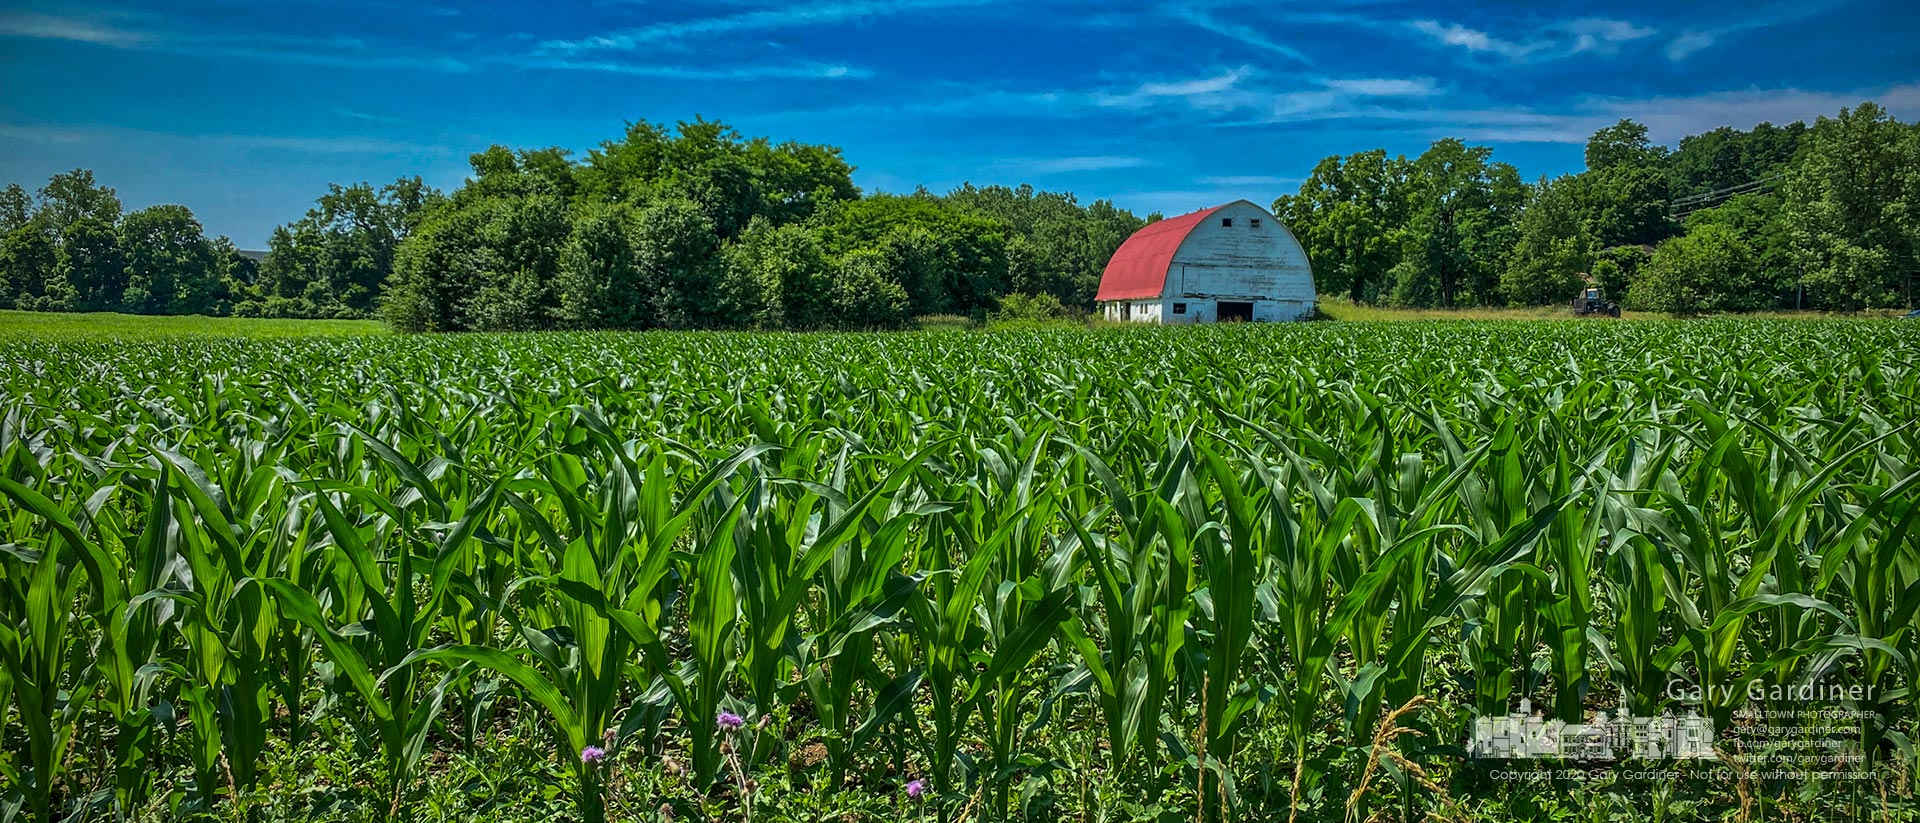 Rows of corn near the barn on the Braun Farm grow taller and wider fed by frequent rains followed by sunny weather. My Final Photo for June 29, 2020.